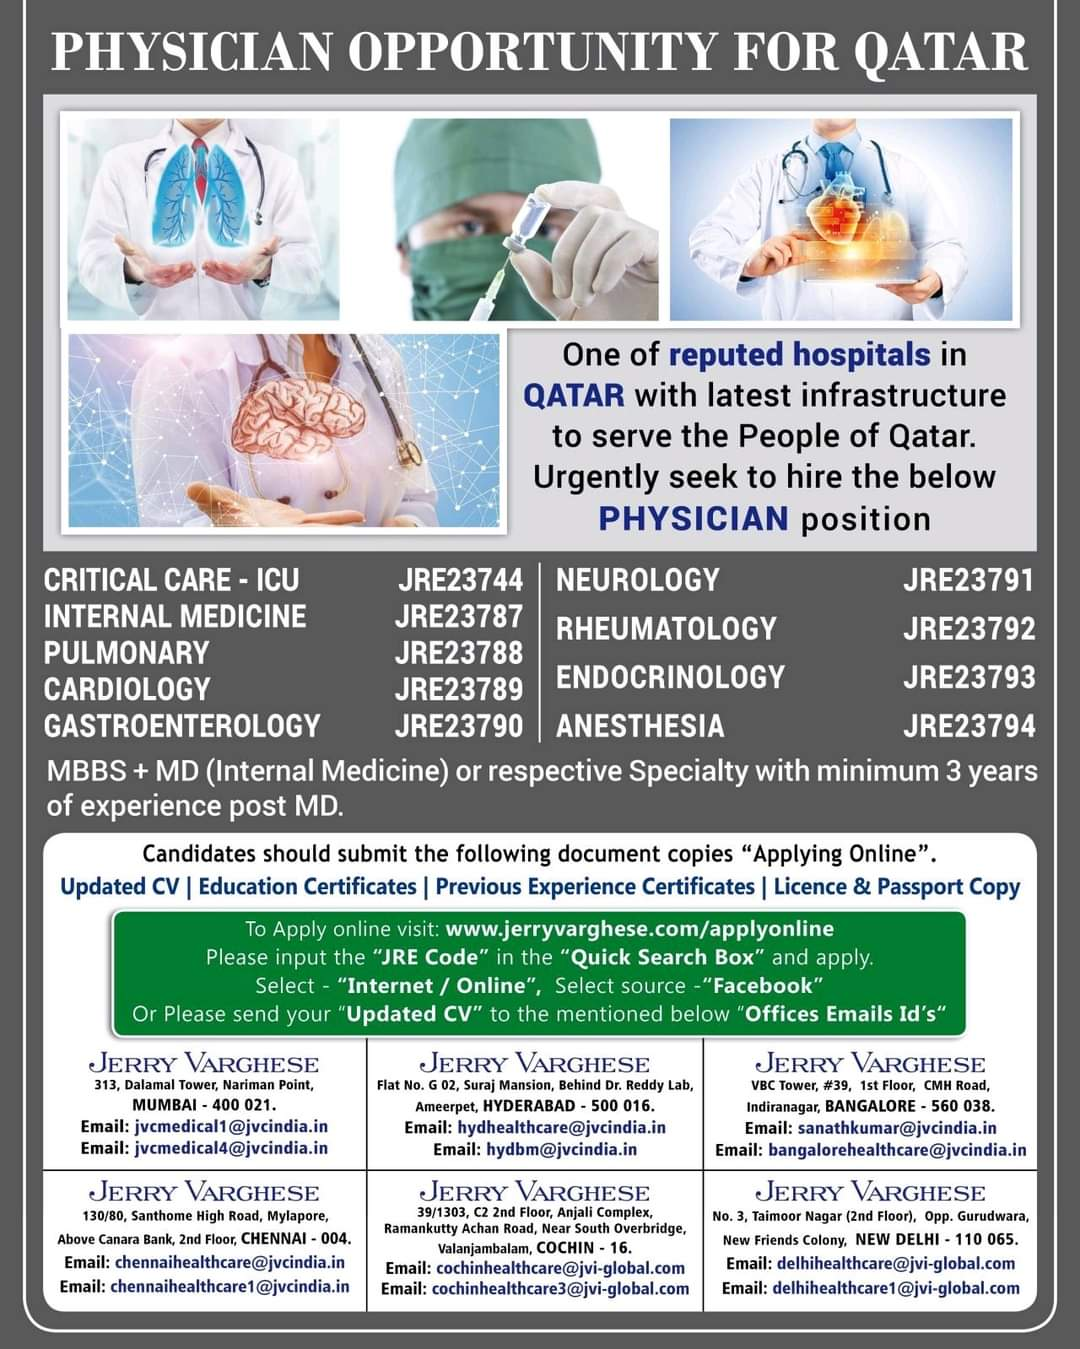 PHYSICIAN OPPORTUNITY FOR QATAR